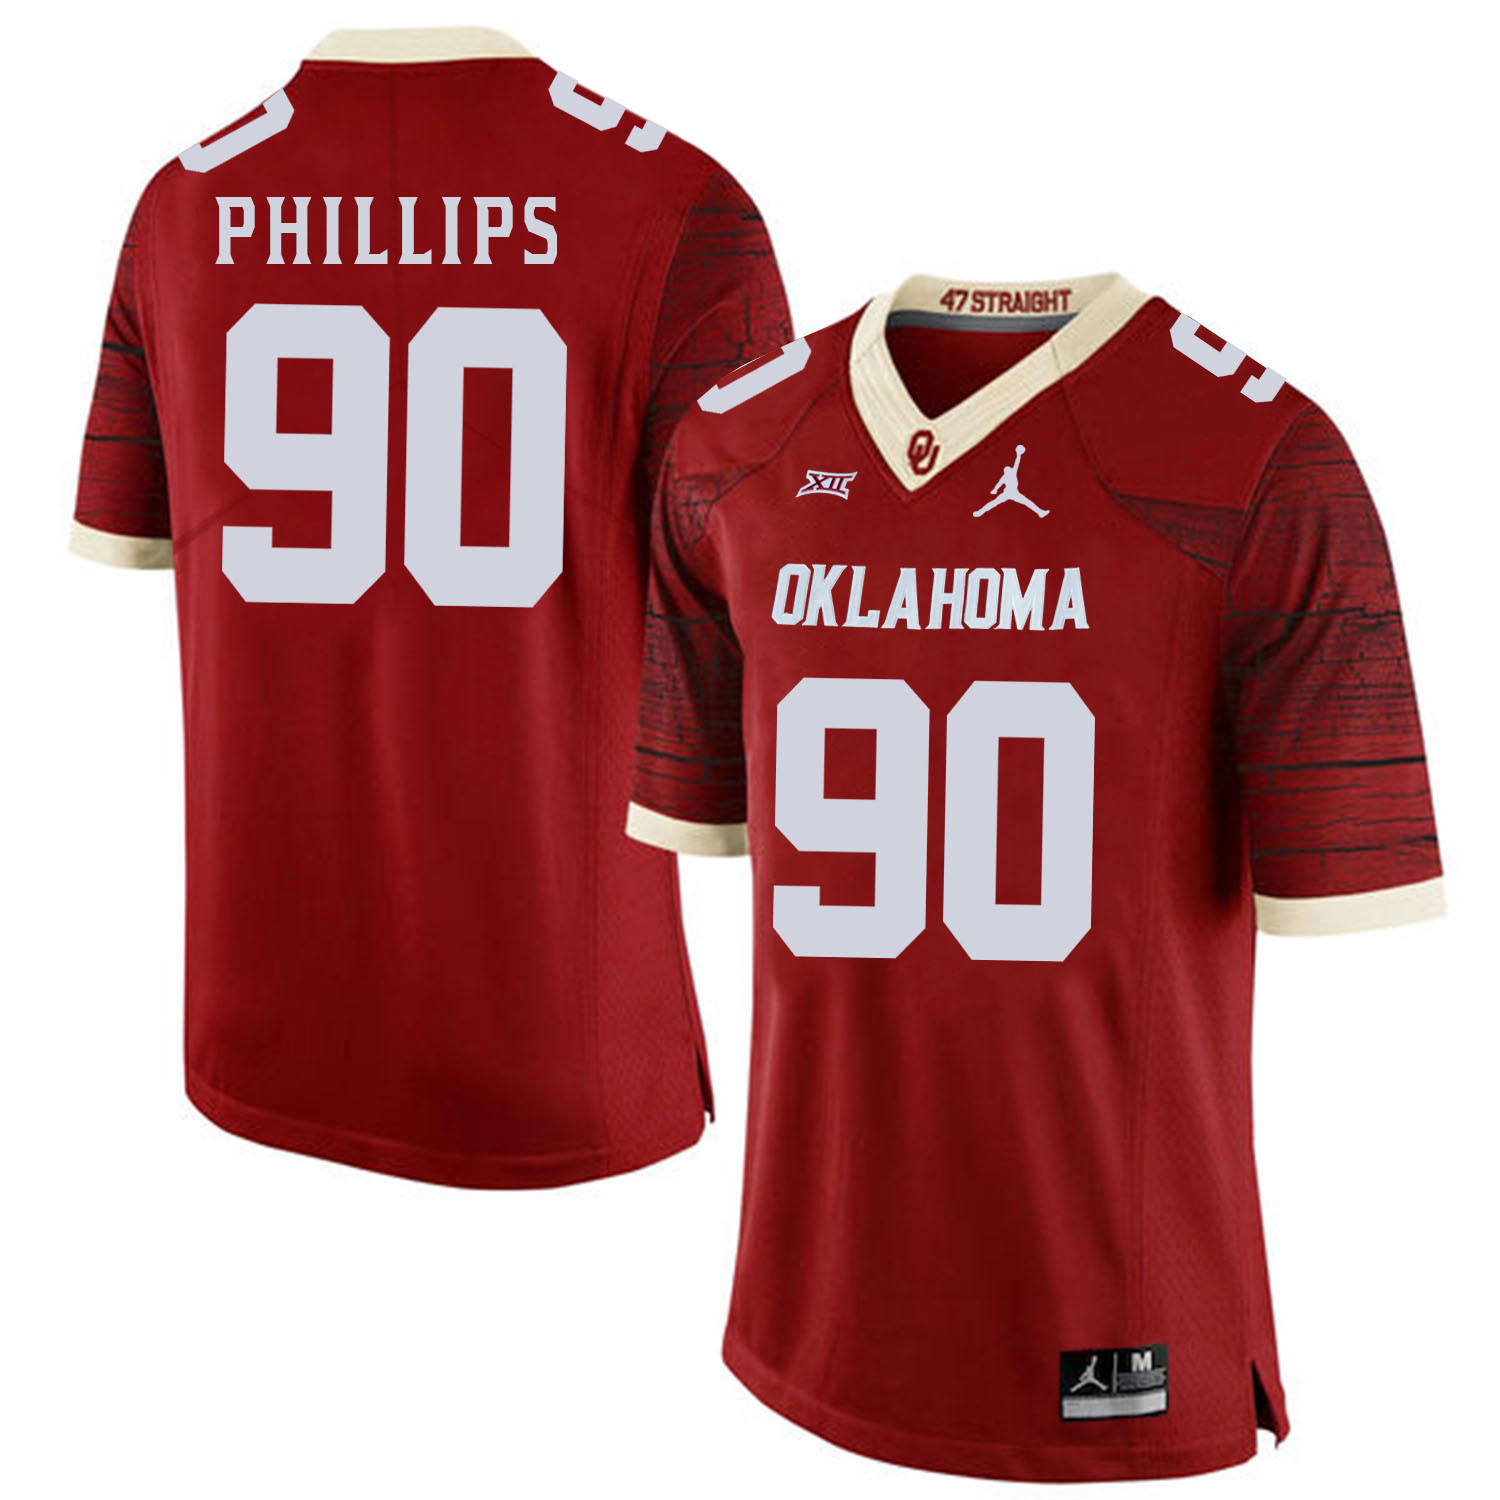 Oklahoma Sooners 90 Jordan Phillips Red 47 Game Winning Streak College Football Jersey